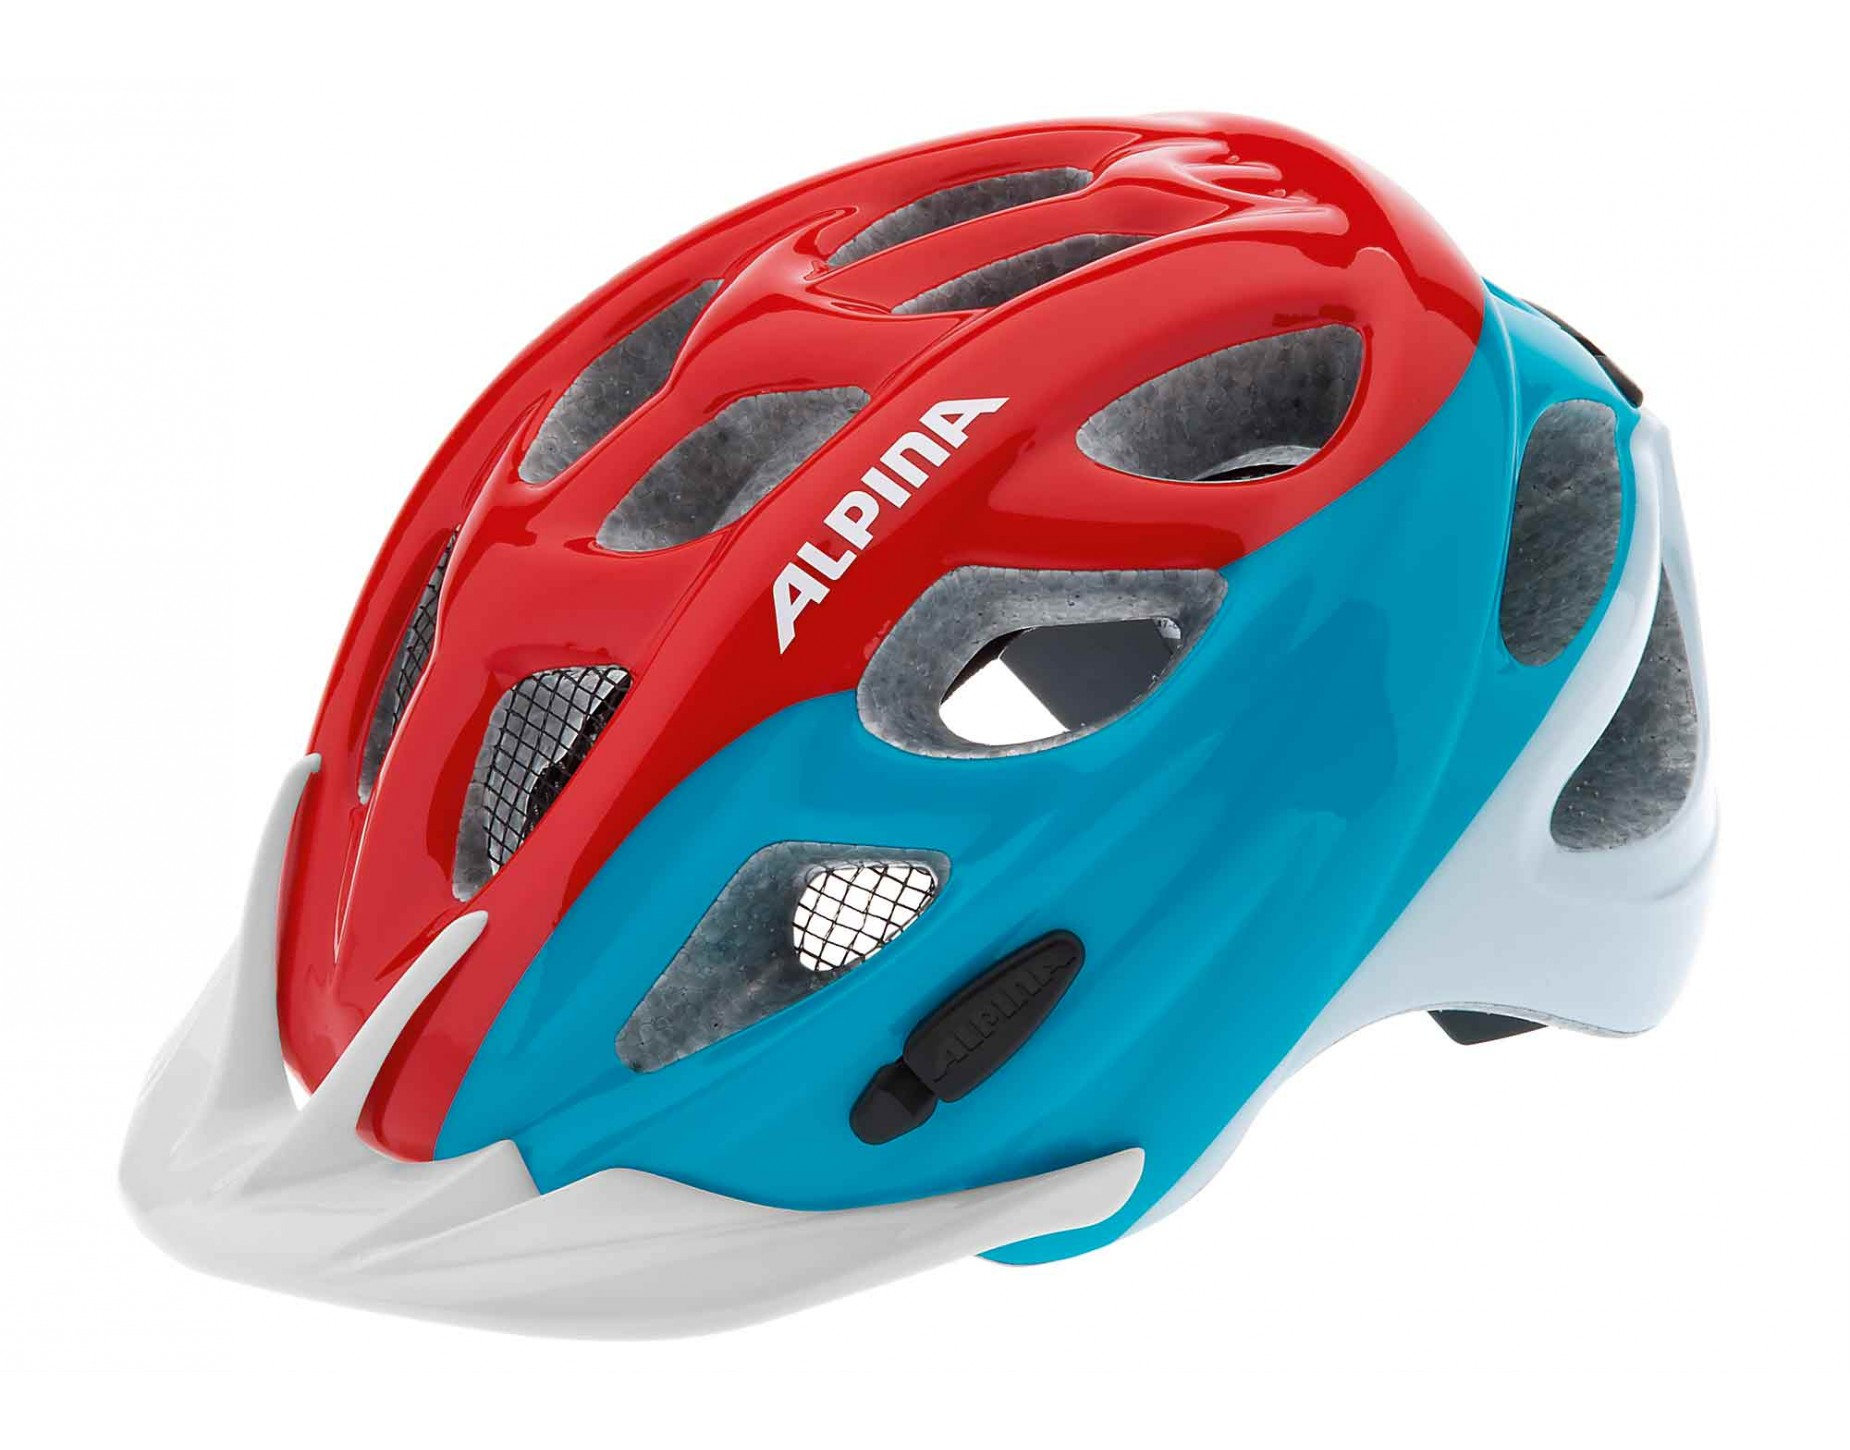 ALPINA ROCKY helmet for kids red blue white